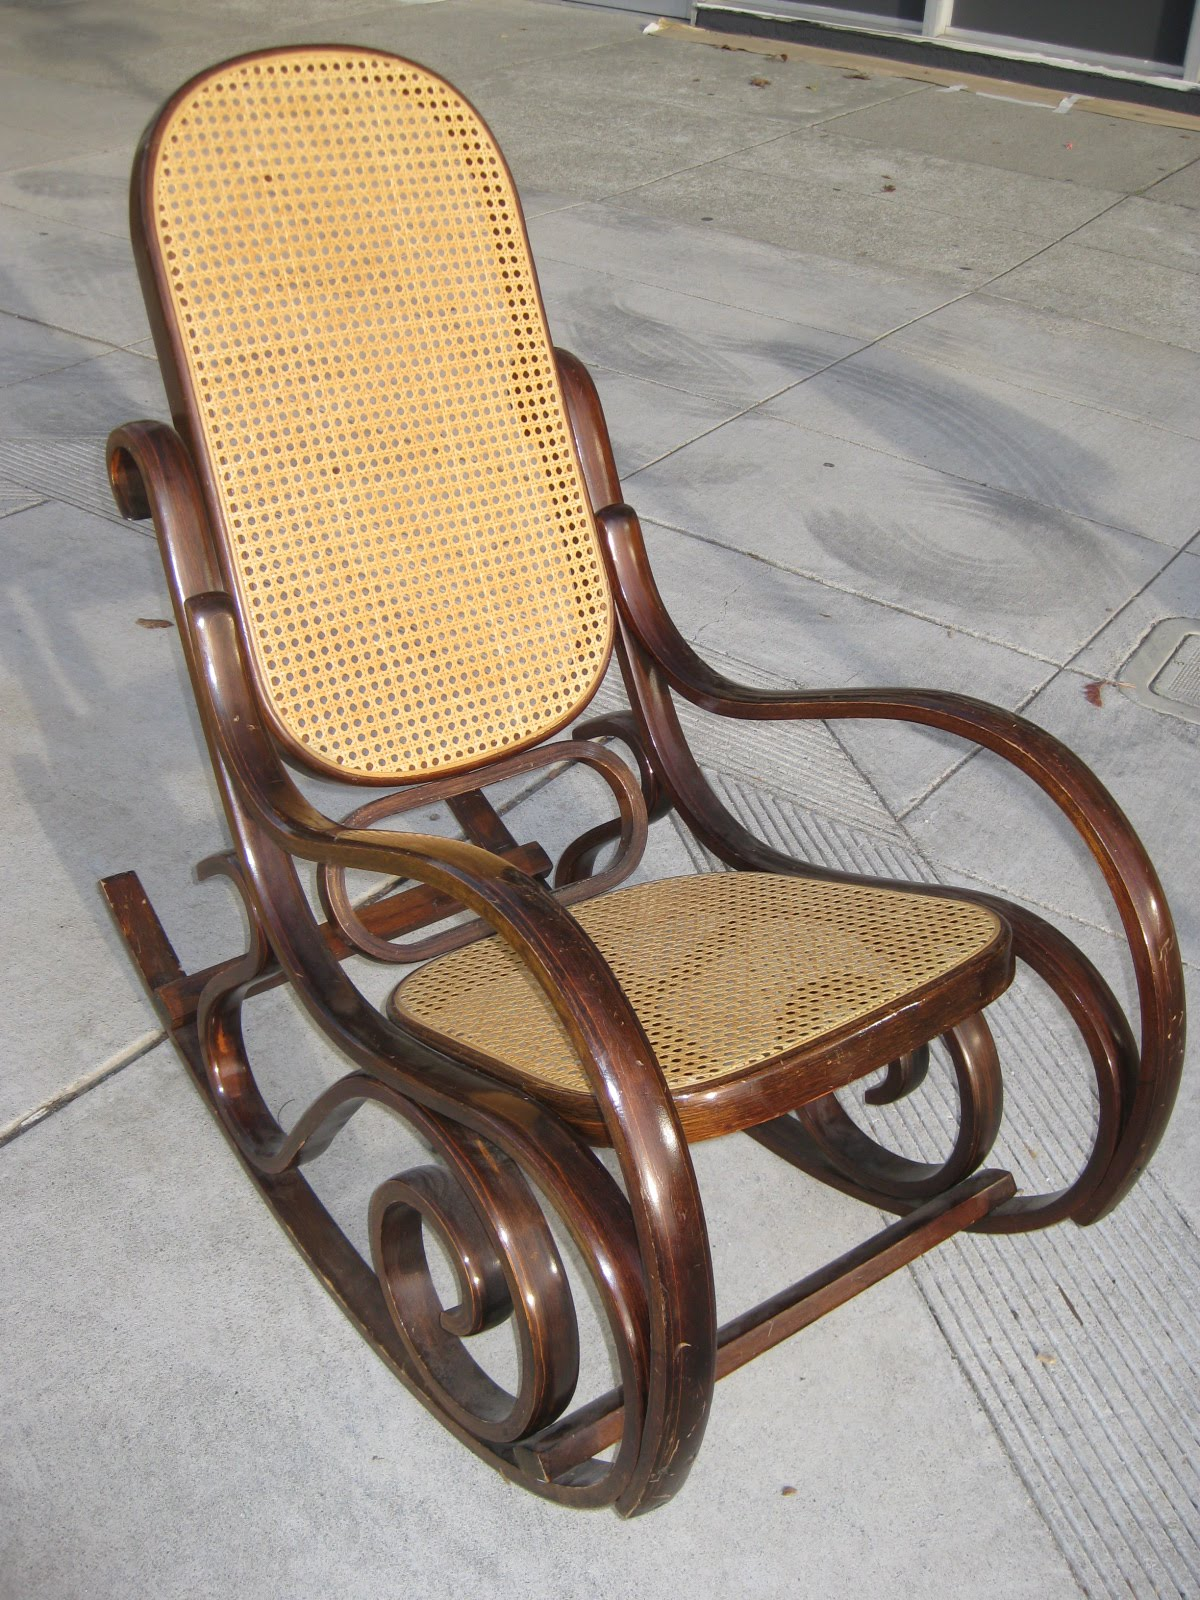 Bentwood rocking chair makeover - Painted Bentwood Rocker